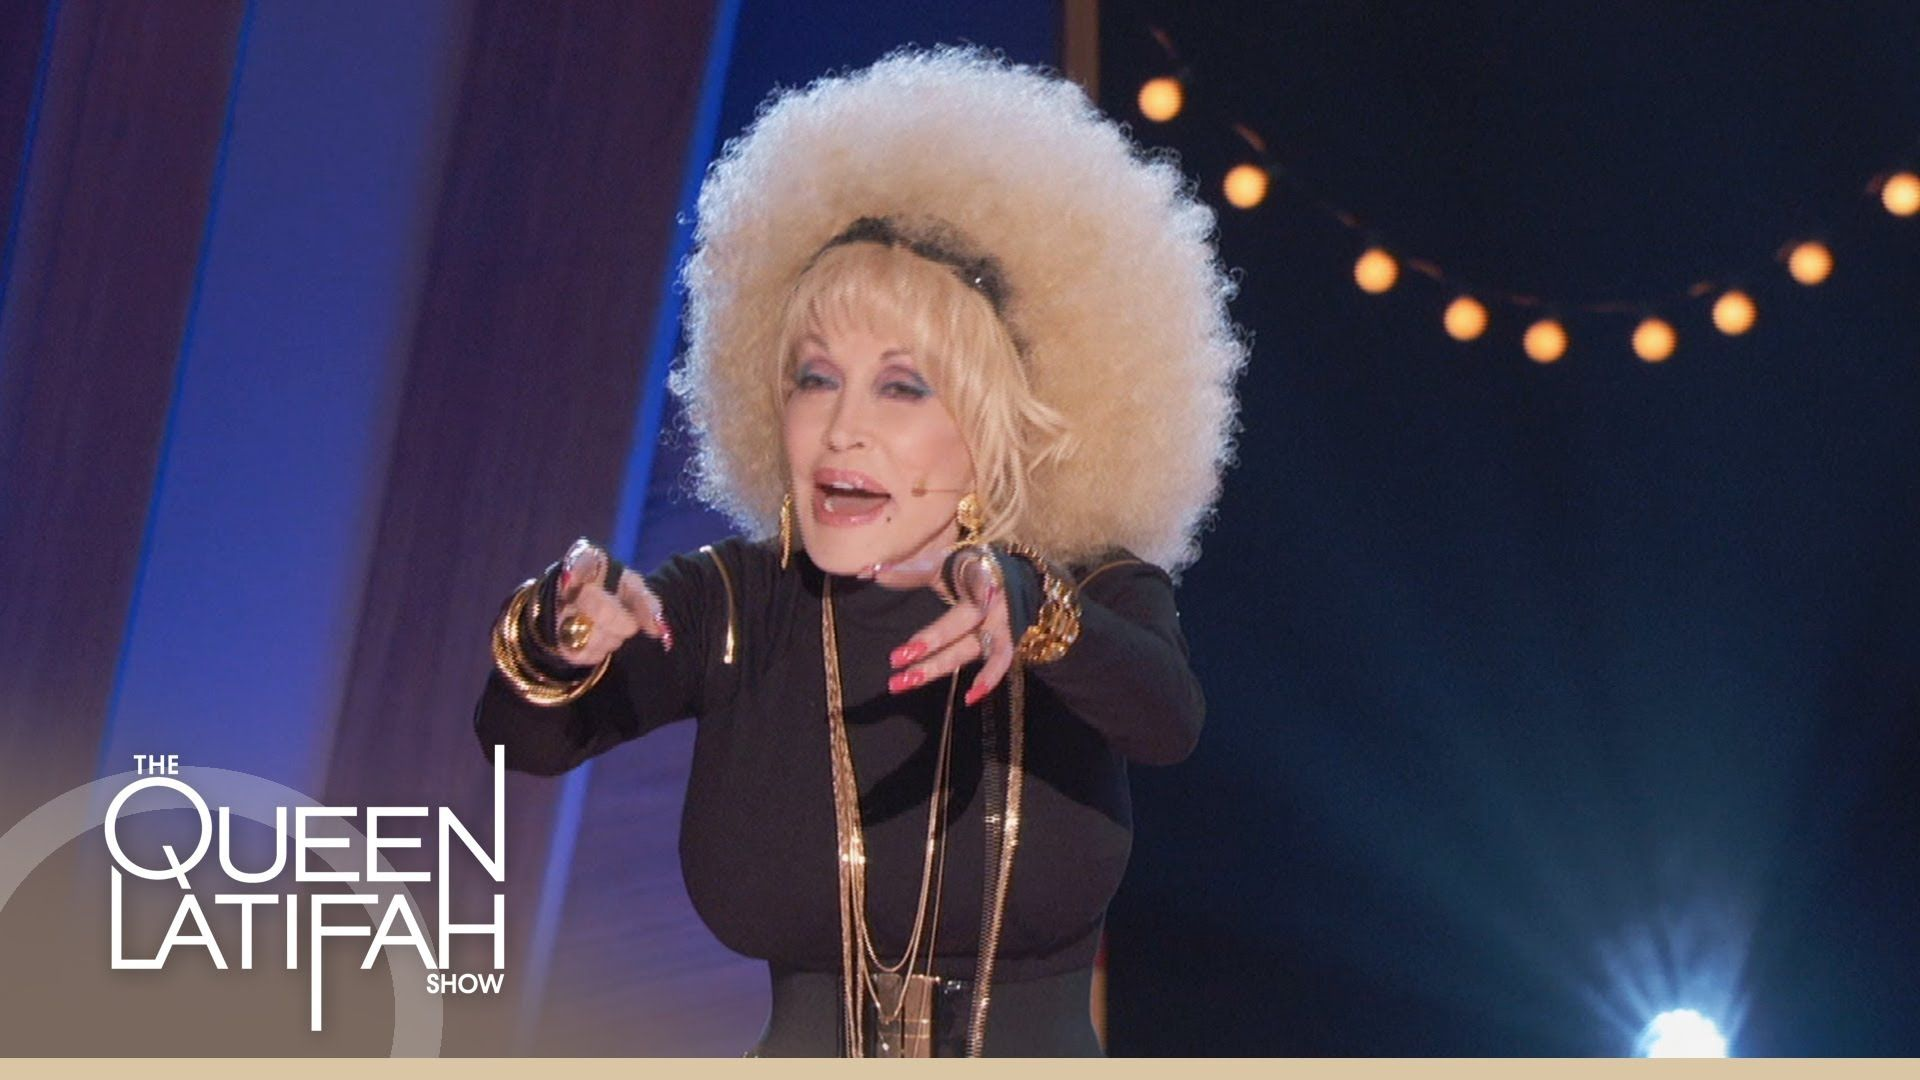 Dolly Parton Raps on The Queen Latifah Show. Dolly Parton busts out her hip-hop skills and does a special rap for Queen Latifah. For the FULL rap, tune in Monday, October 21!